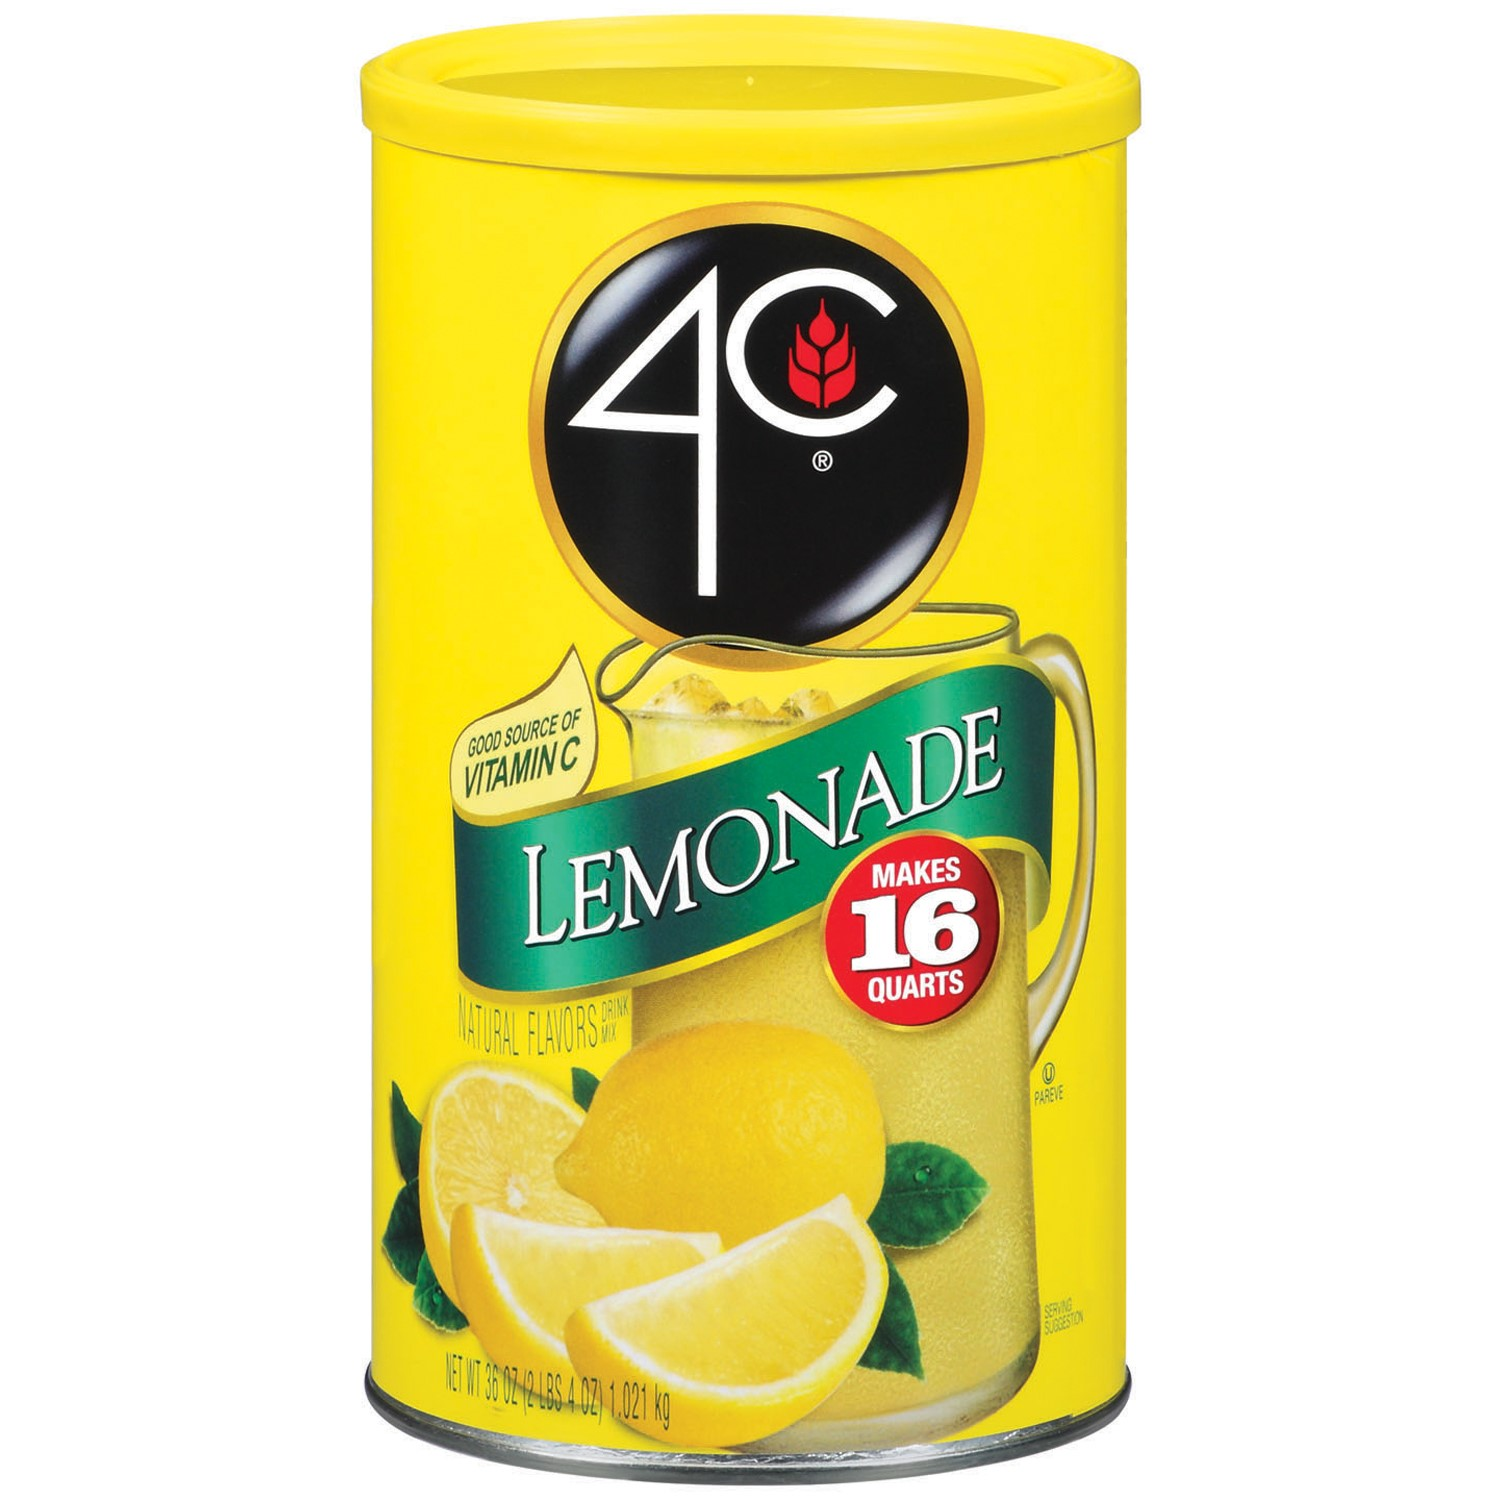 4C Drink Mix, Lemonade, 36 Oz, 1 Count